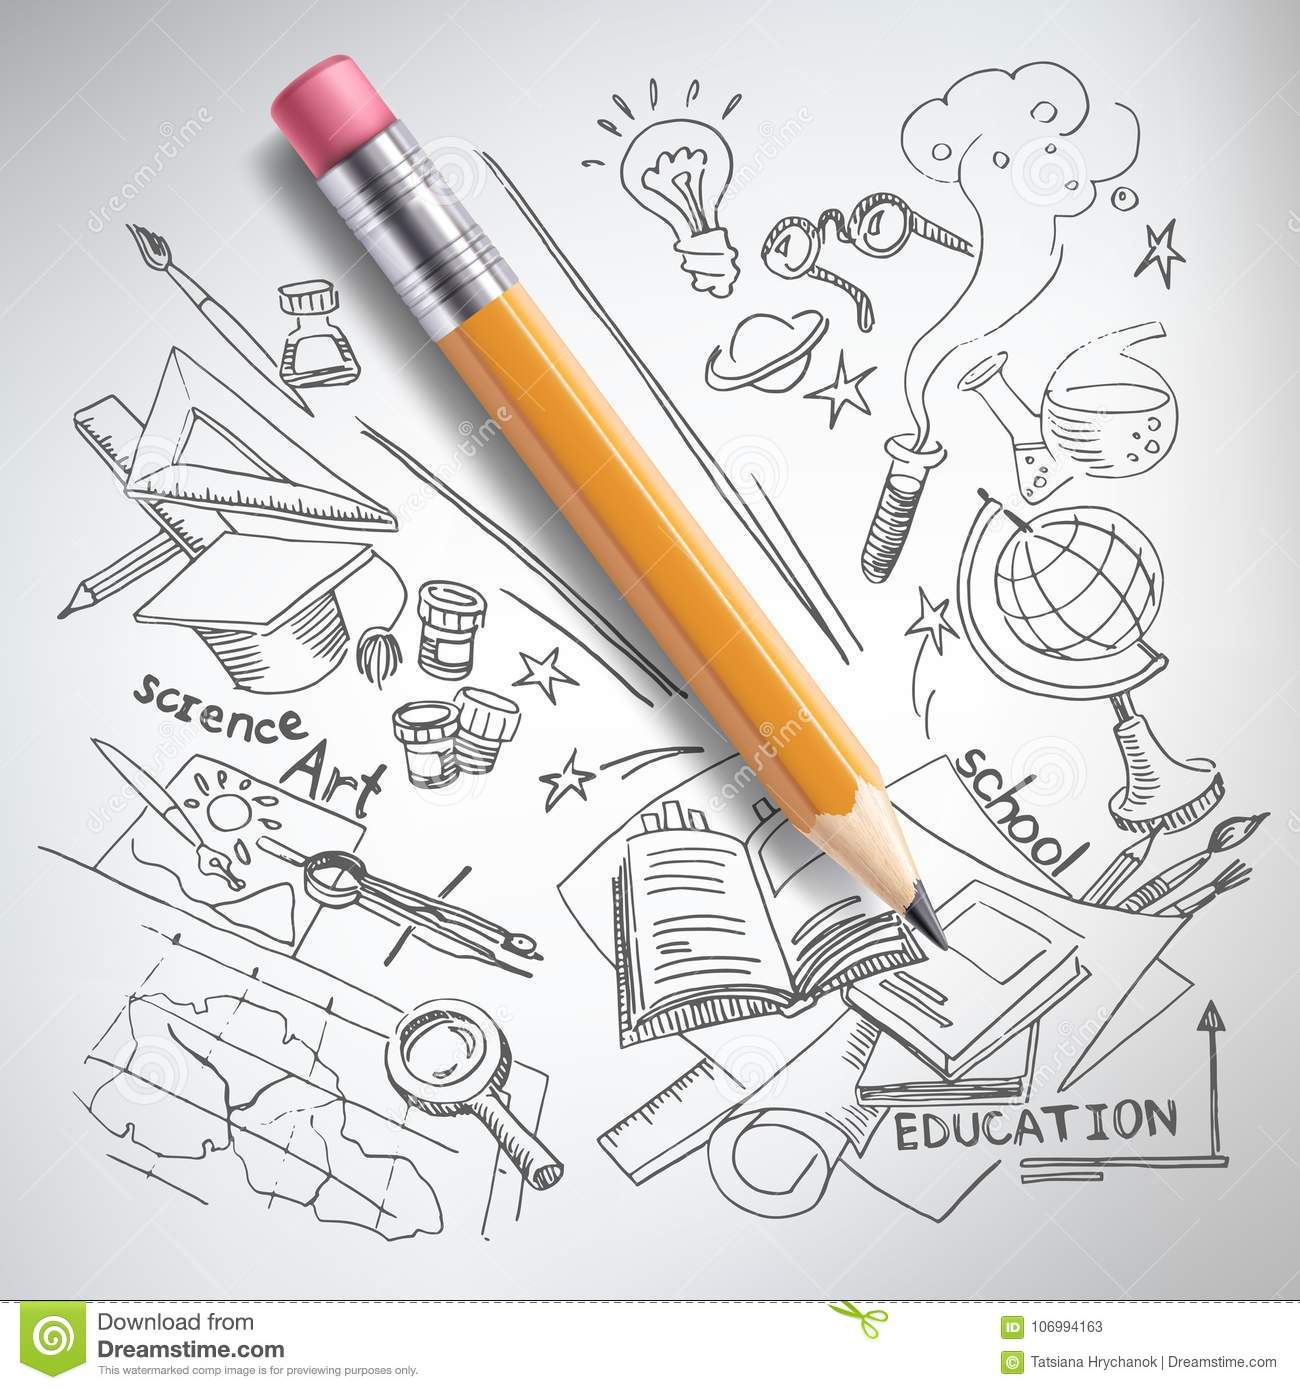 Vector realistic pencil on paper with sketch creative education science school hand drawn doodles symbols concept of idea study research and